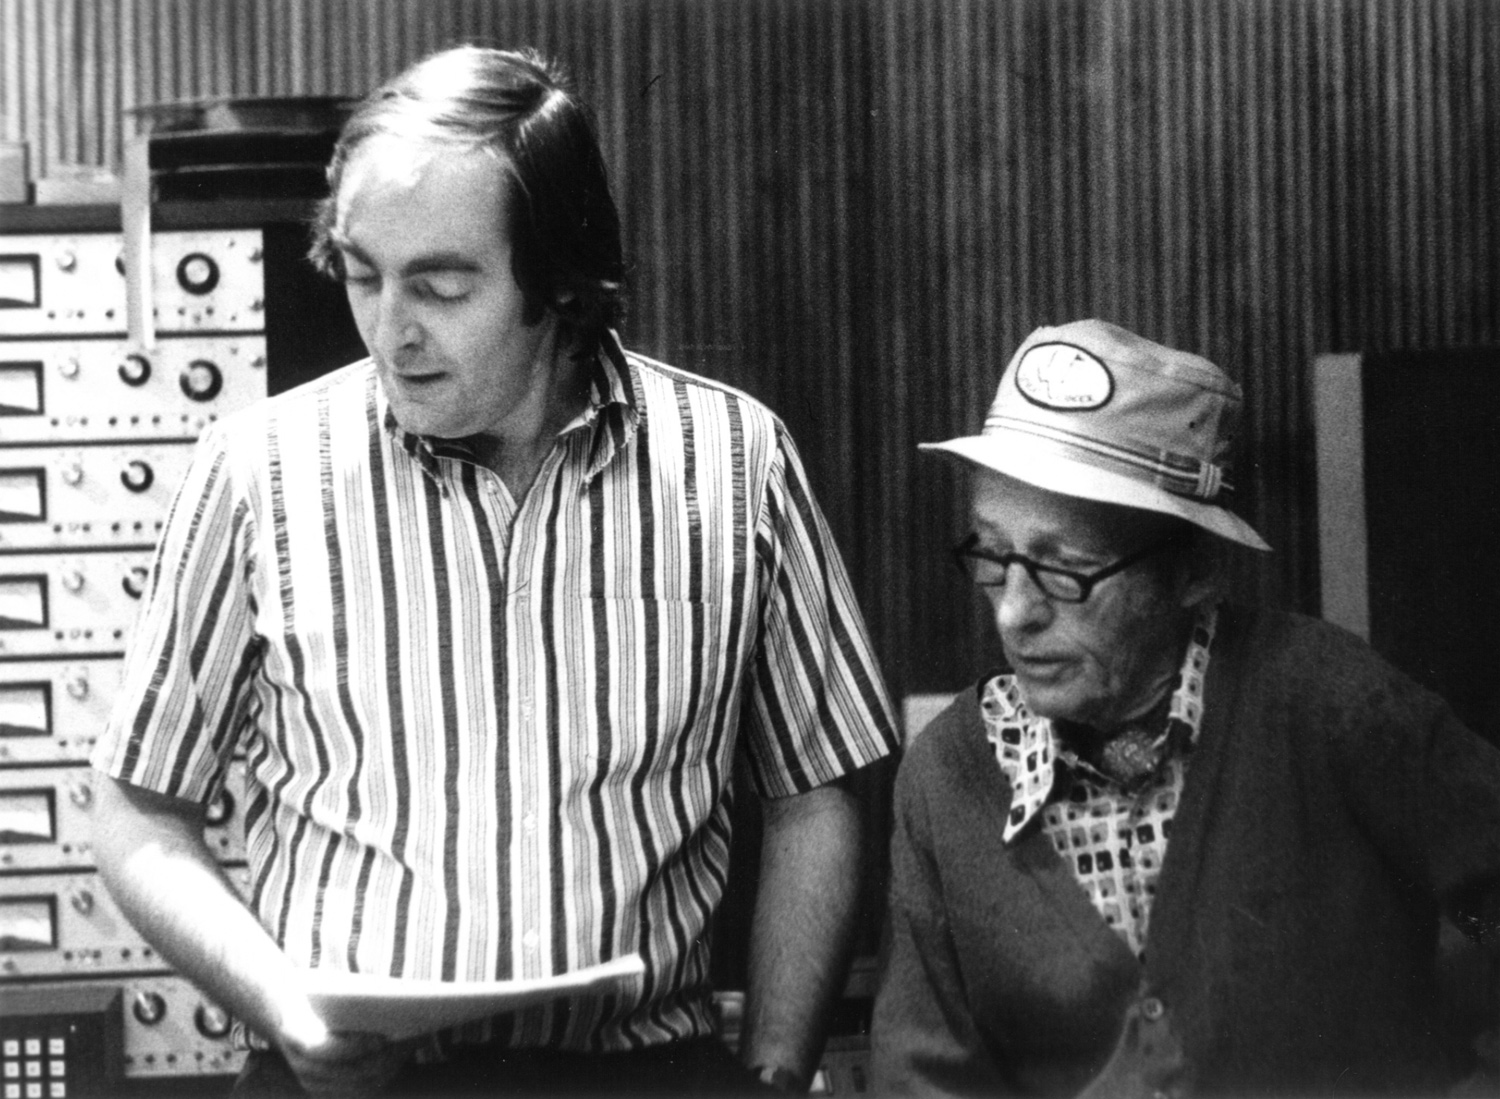 KEVIN WITH BING CROSBY IN DECCA STUDIO 3, RECORDING THE ALBUM, 'FEELS GOOD, FEELS RIGHT', 1976